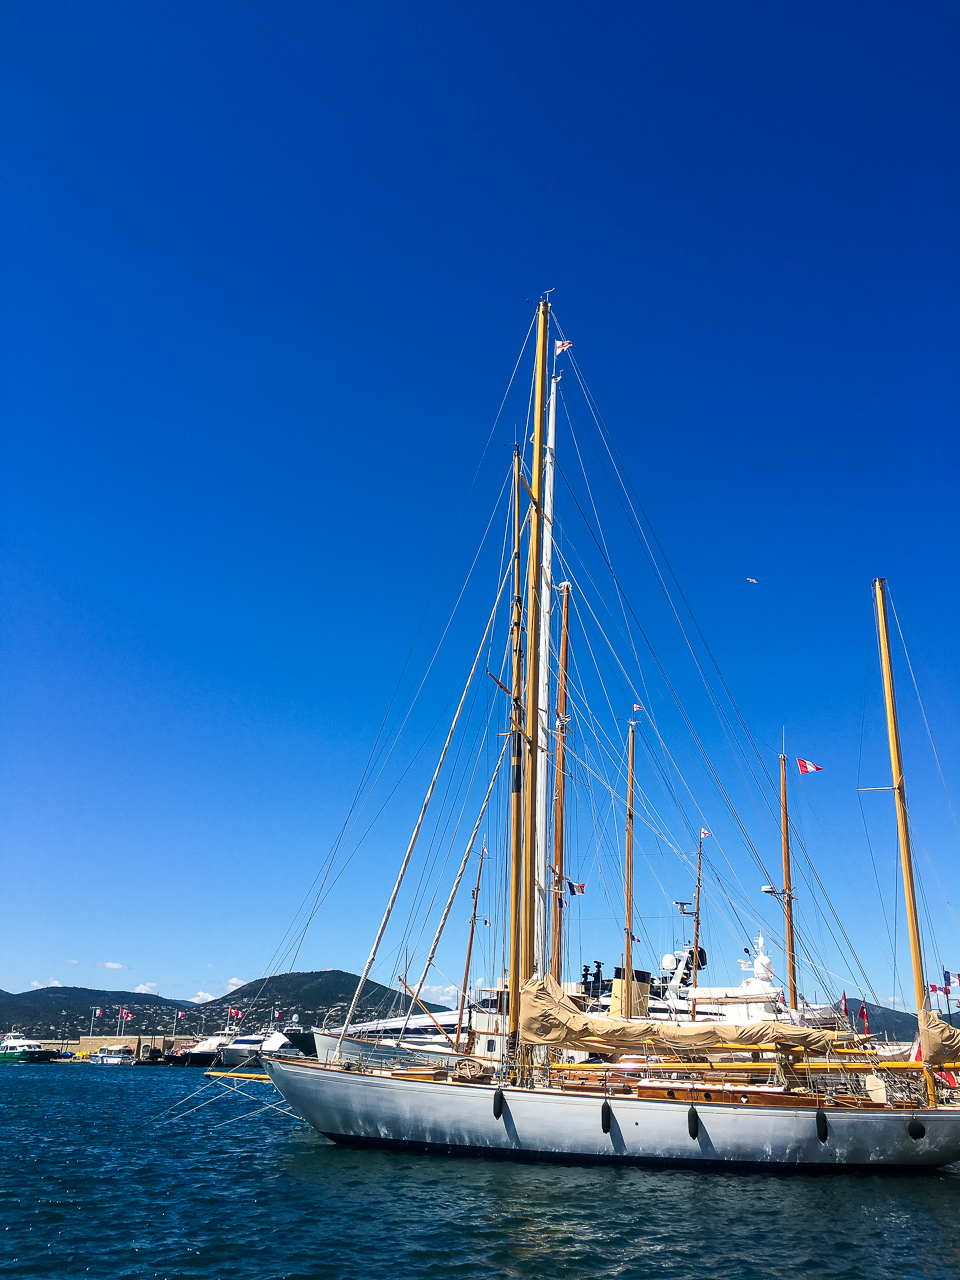 StTropez_Provence_France